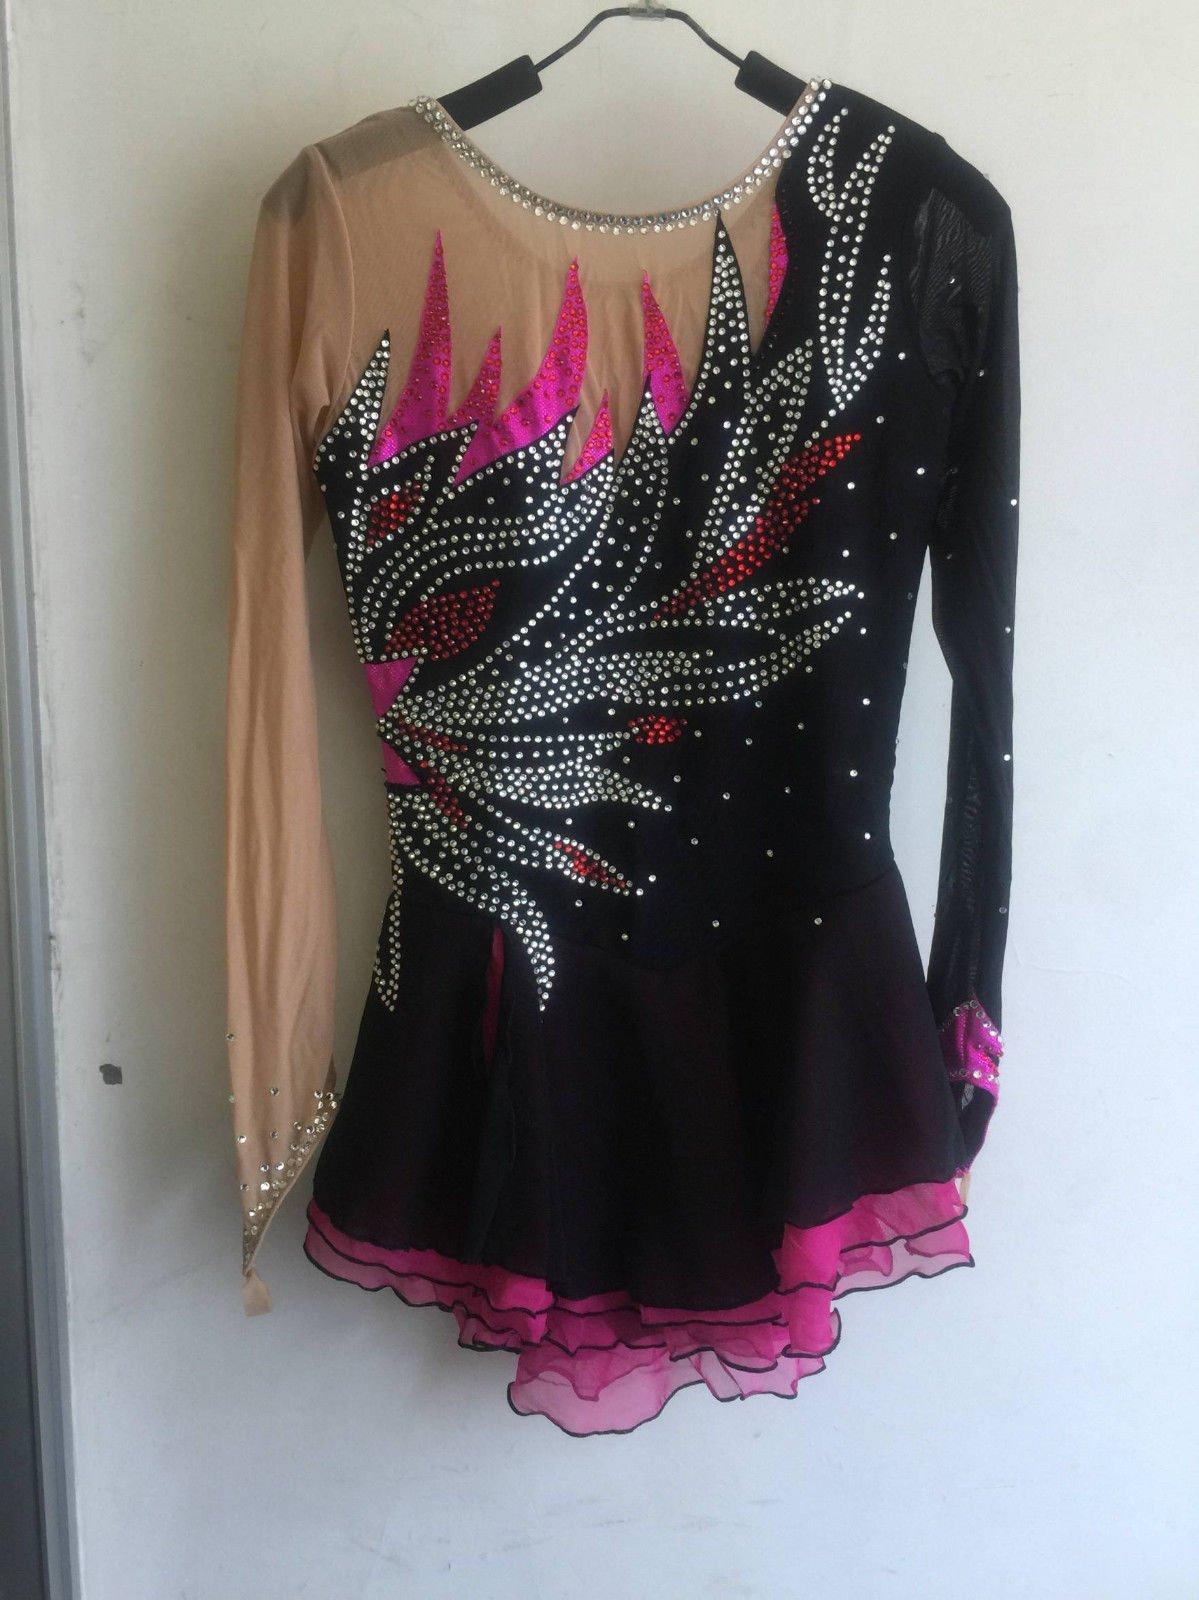 Pink Black Ice Skating Dress for Women Competition Skating Dresses for Girls Custom by YIKE